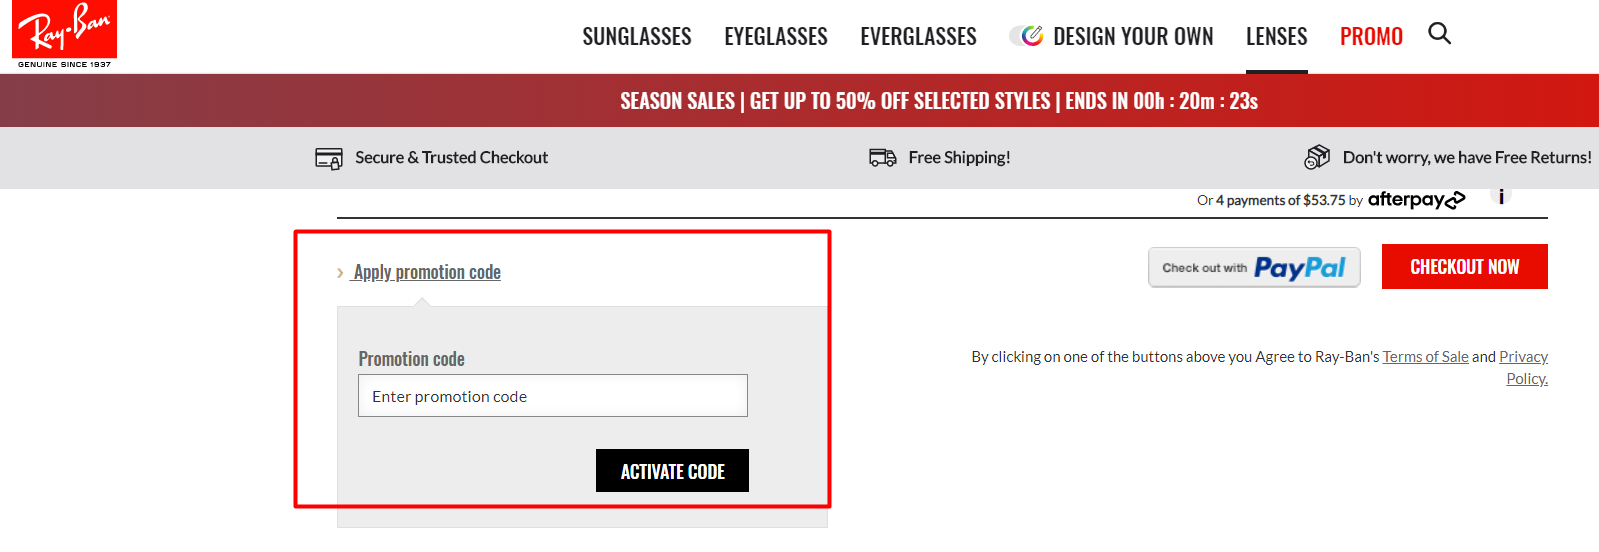 How do I use my Ray-Ban discount code?